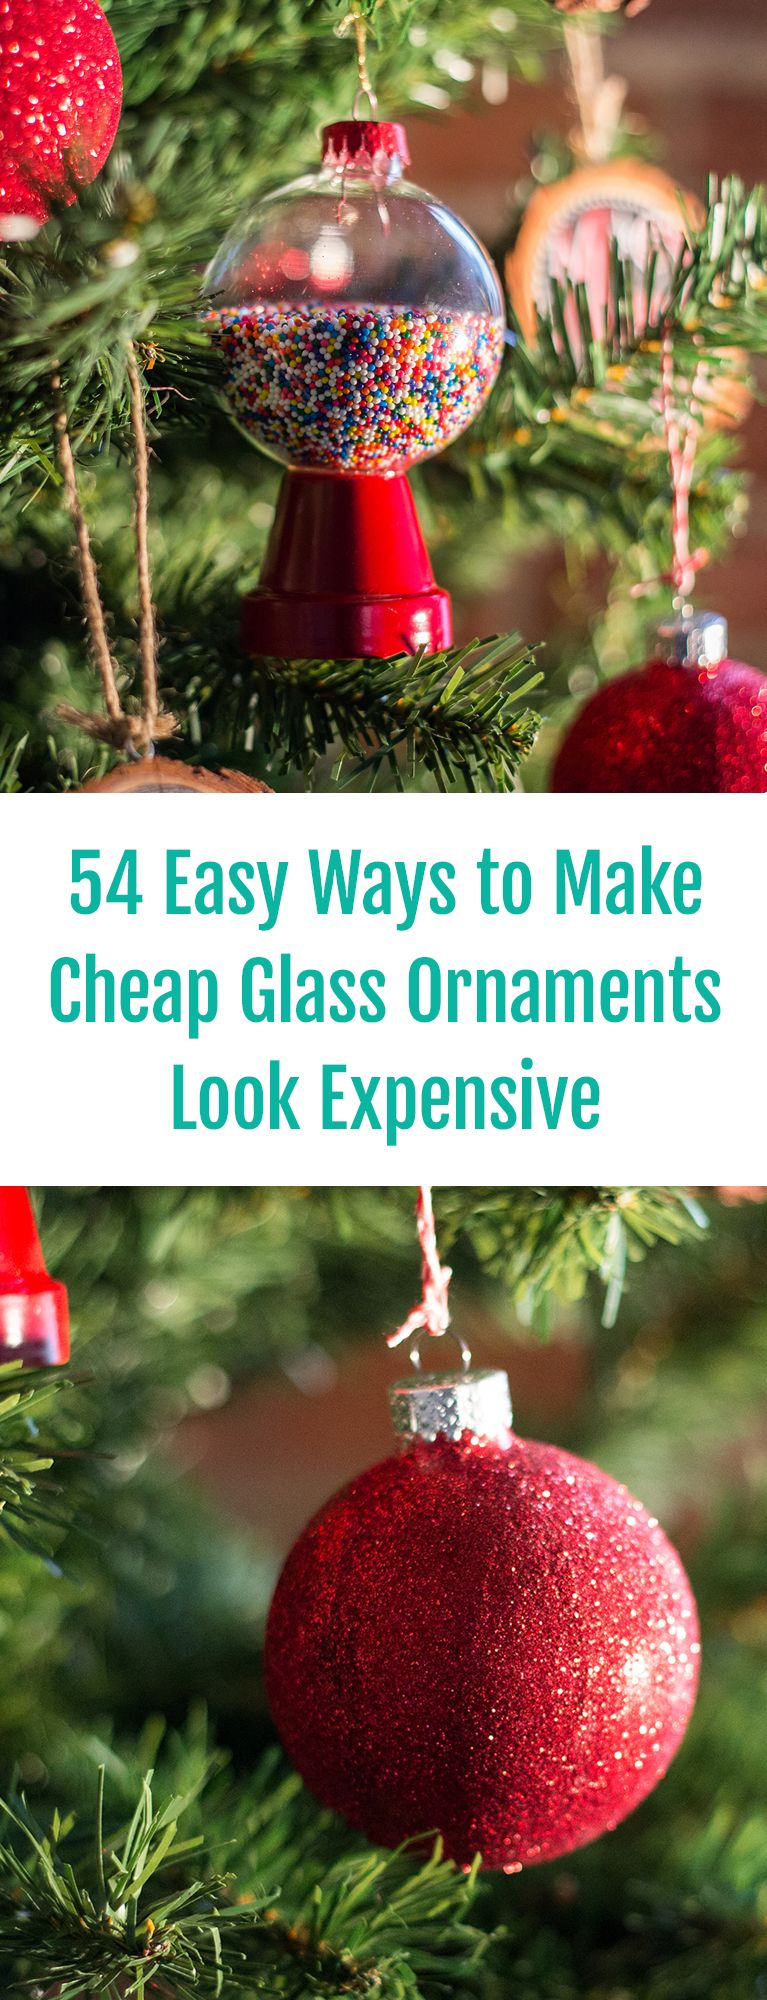 Ornament & Budget-Friendly Gift Ideas to Make For Your Favorite Couple ...